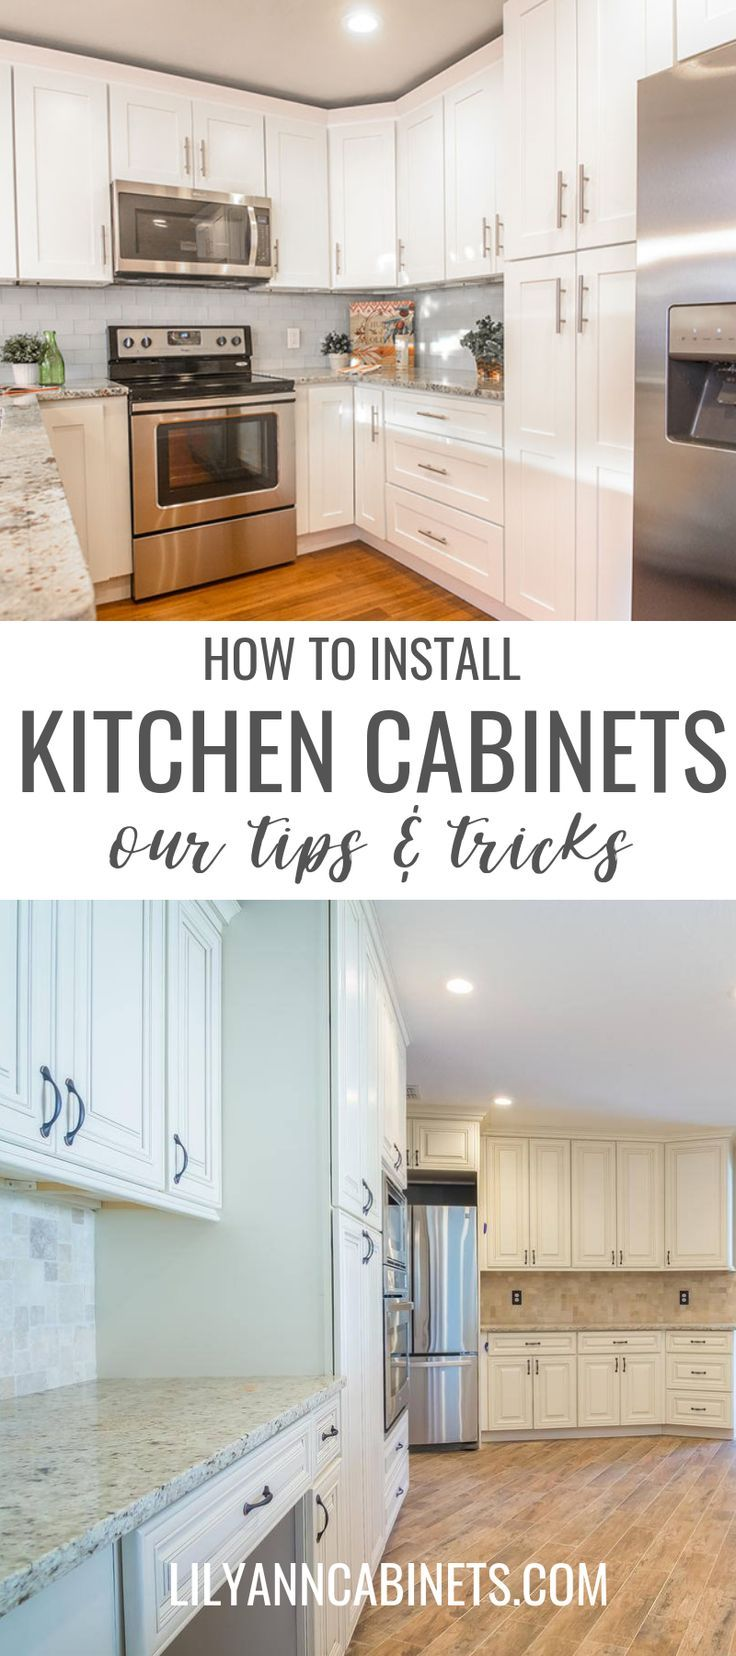 How To Install Kitchen Cabinets Cottage Kitchen Design Installing Kitchen Cabinets Kitchen Cabinets